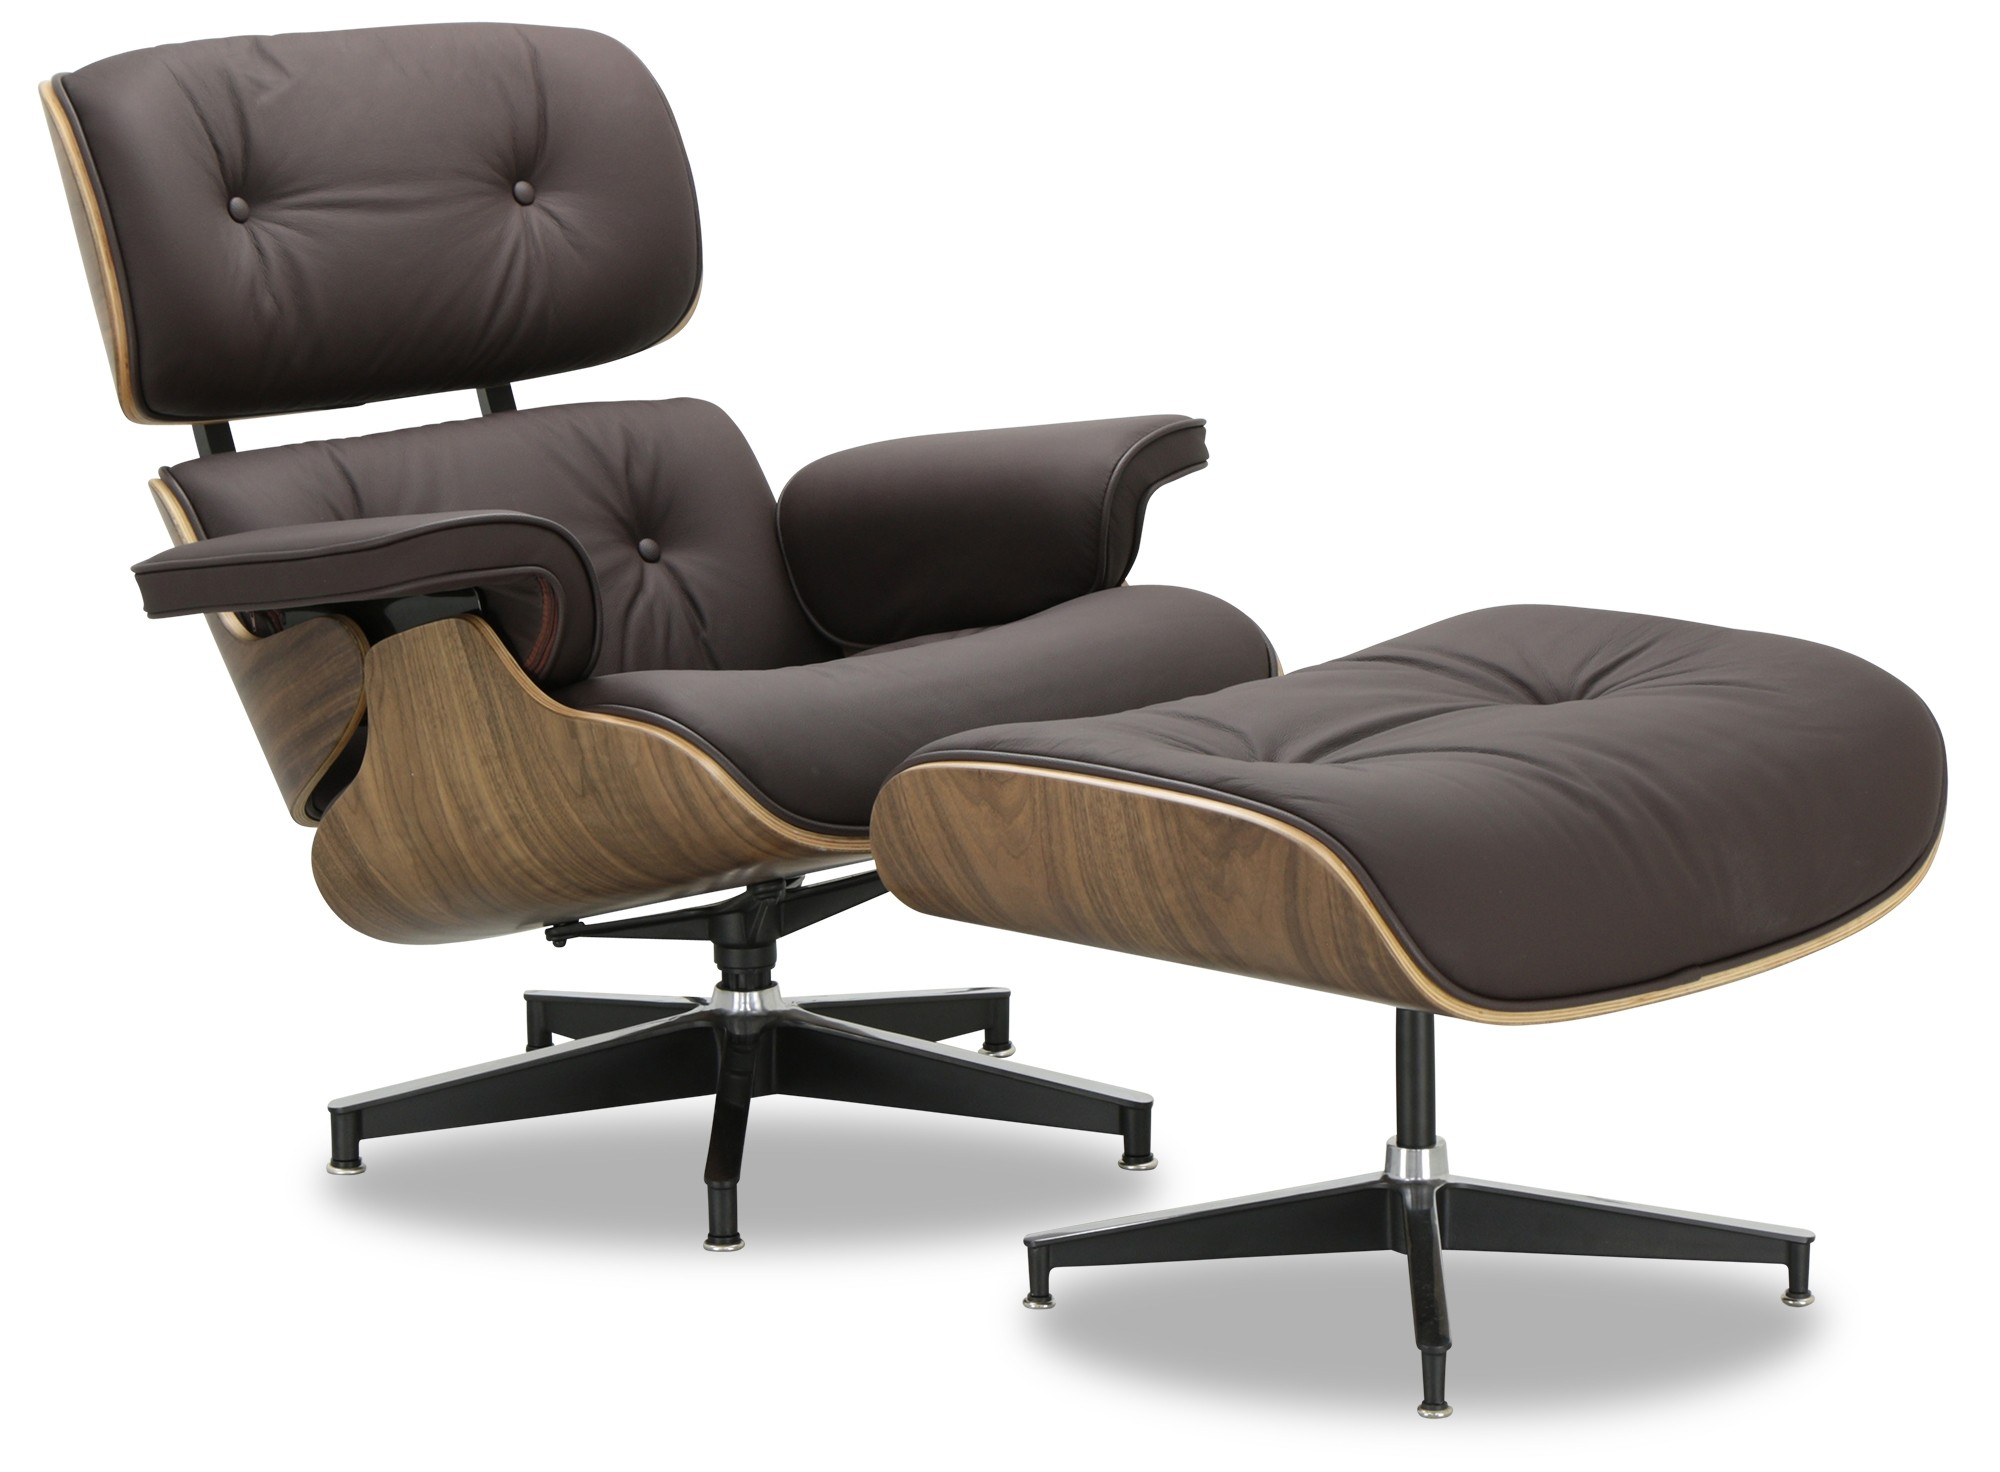 Brown Leather Chairs Designer Replica Eames Lounge Chair Dark Brown Leather